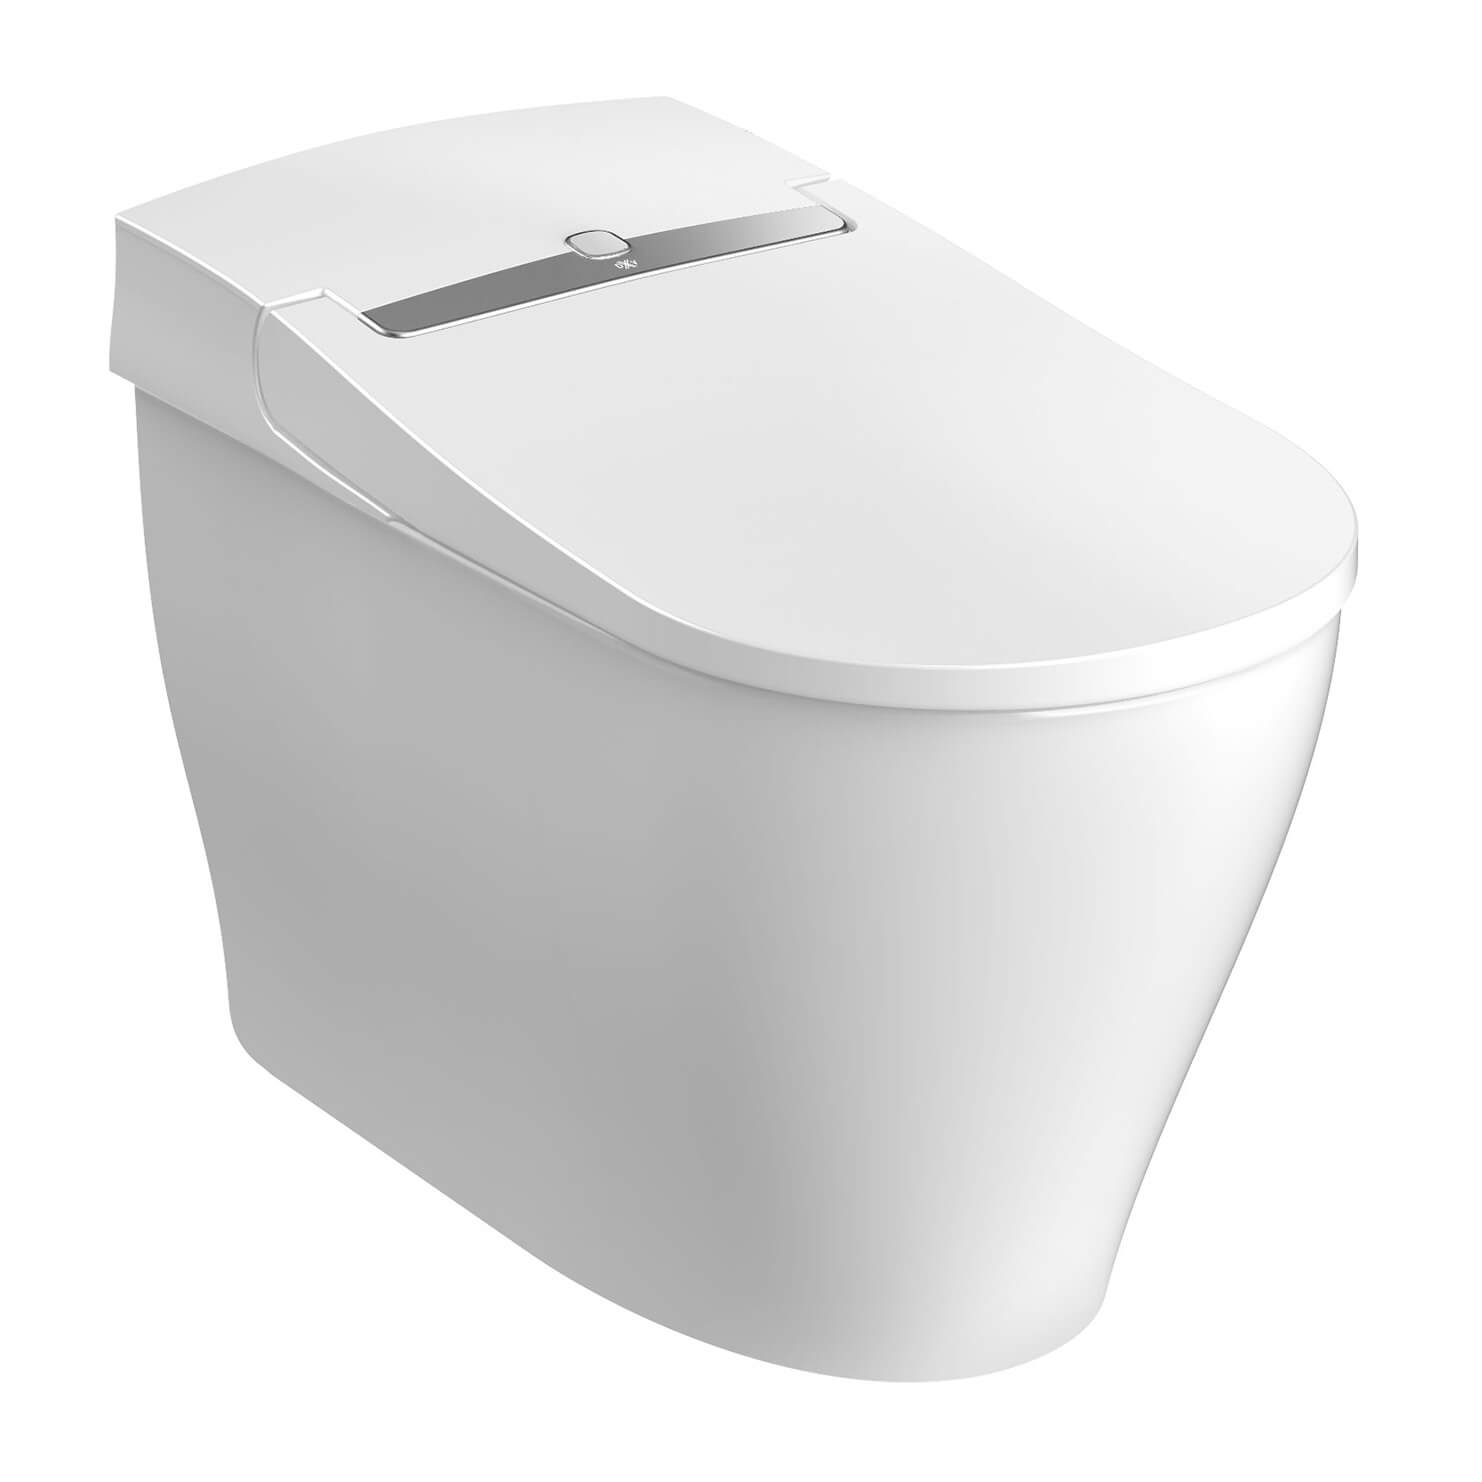 AT200LS SpaLet Integrated Electronic Bidet Toilet